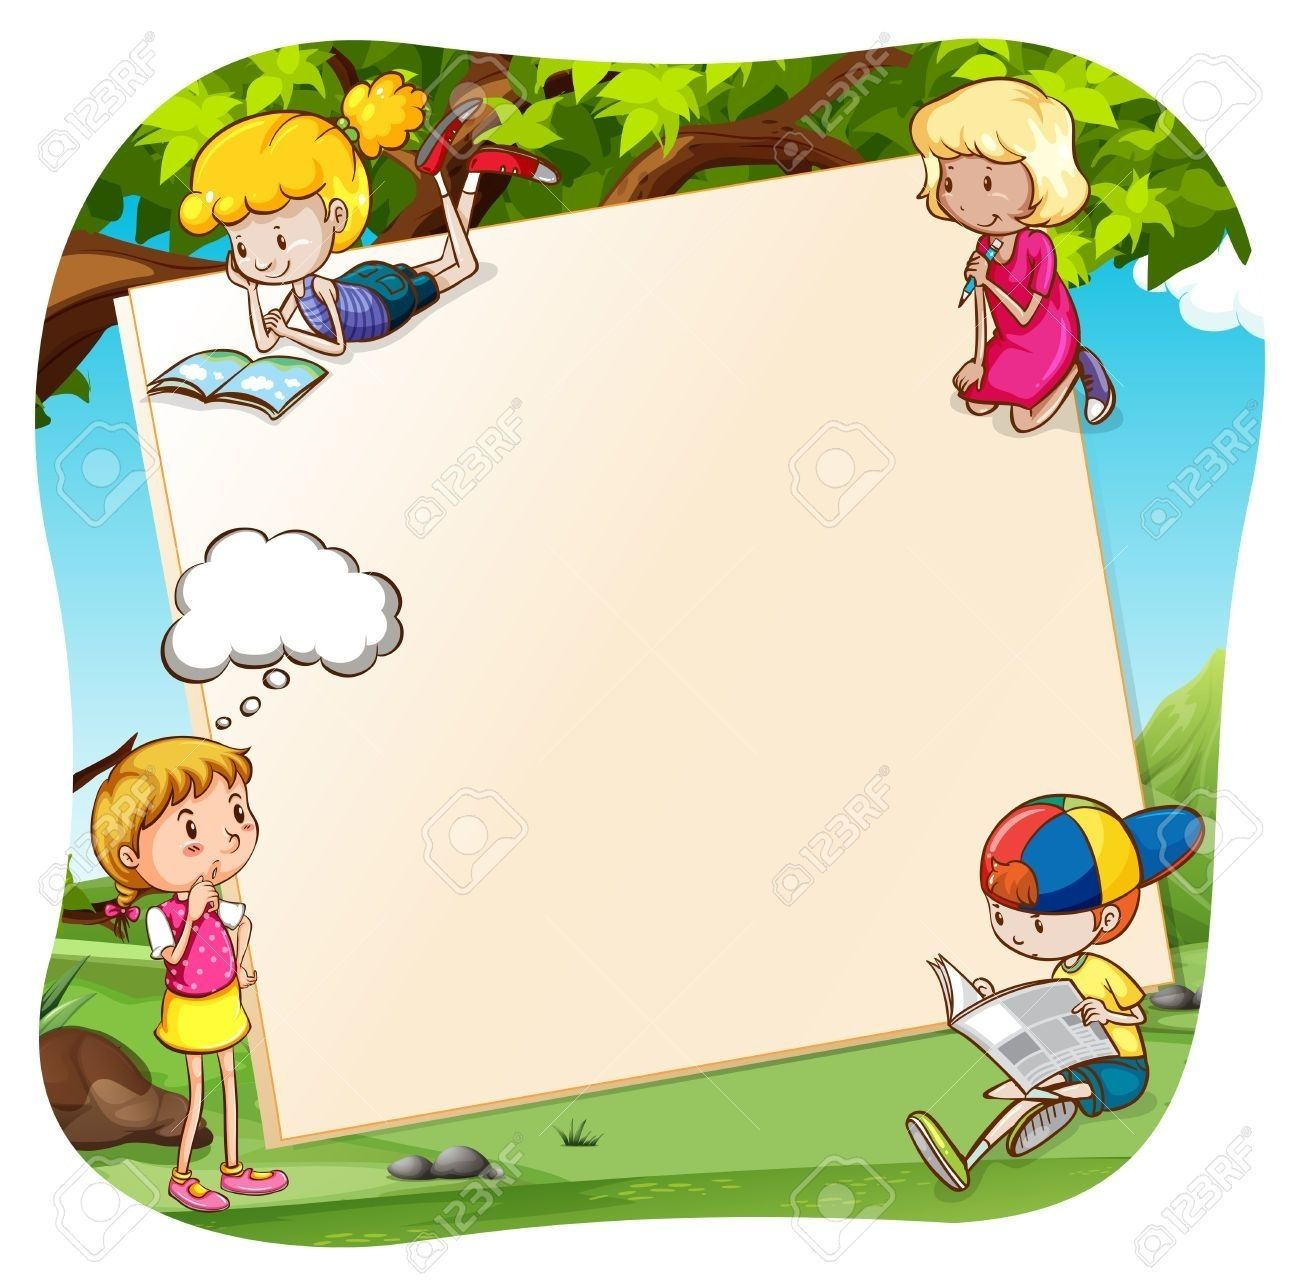 8+ Write Clipart - Preview : Clipart Of Kids W | HDClipartAll